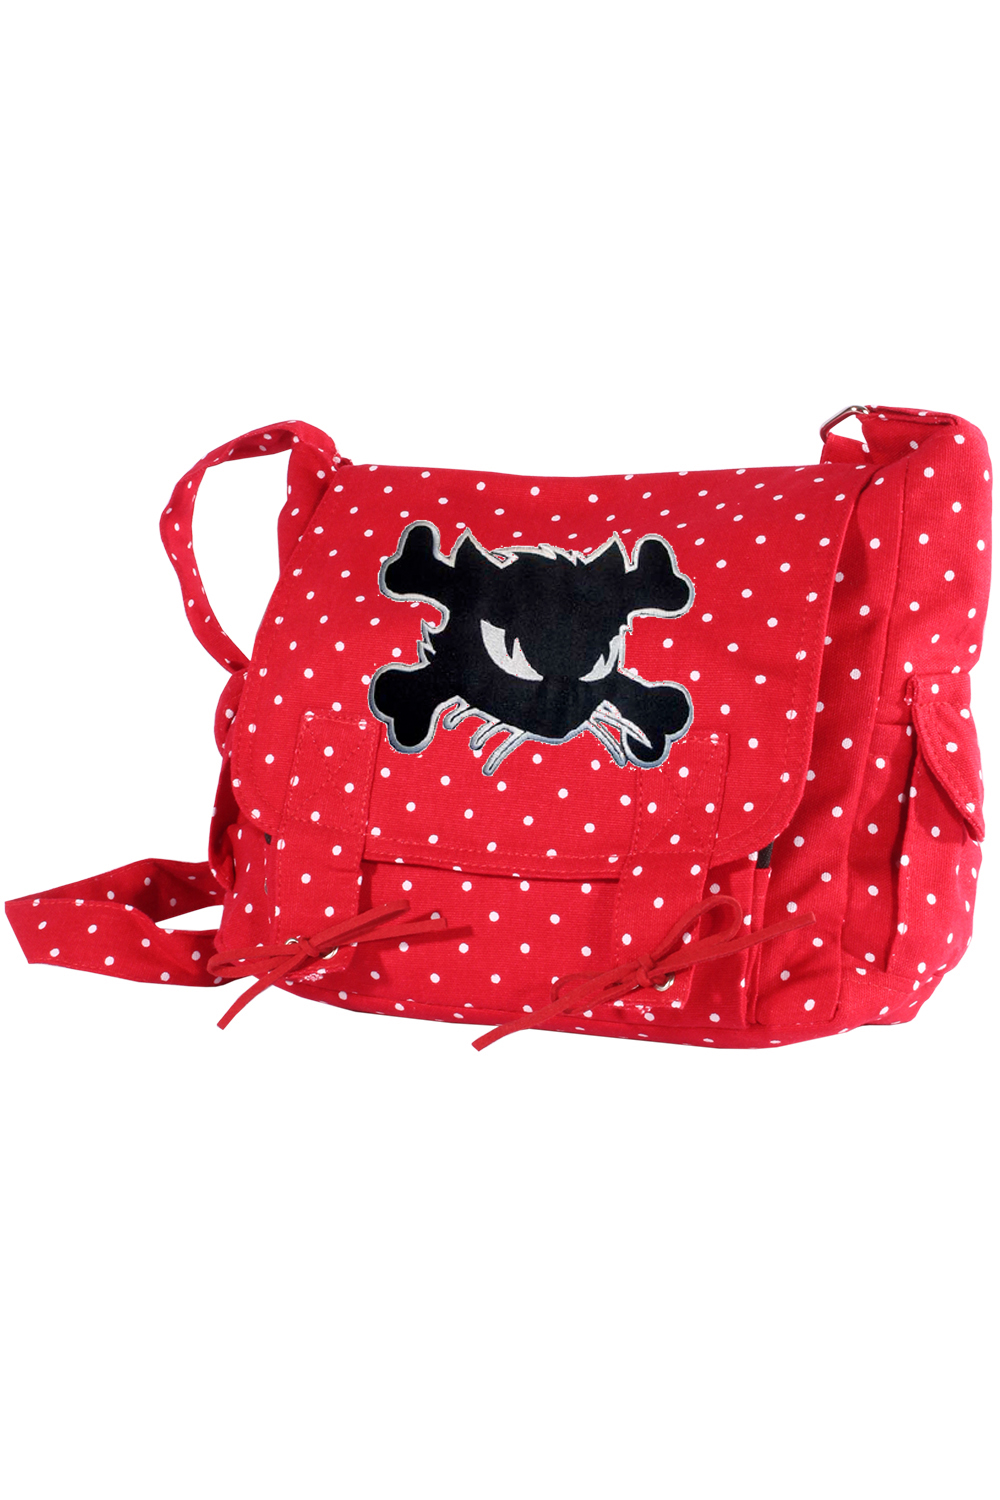 Kitty pin up POLKA DOTS Cat rockabilly Military Handtasche rot